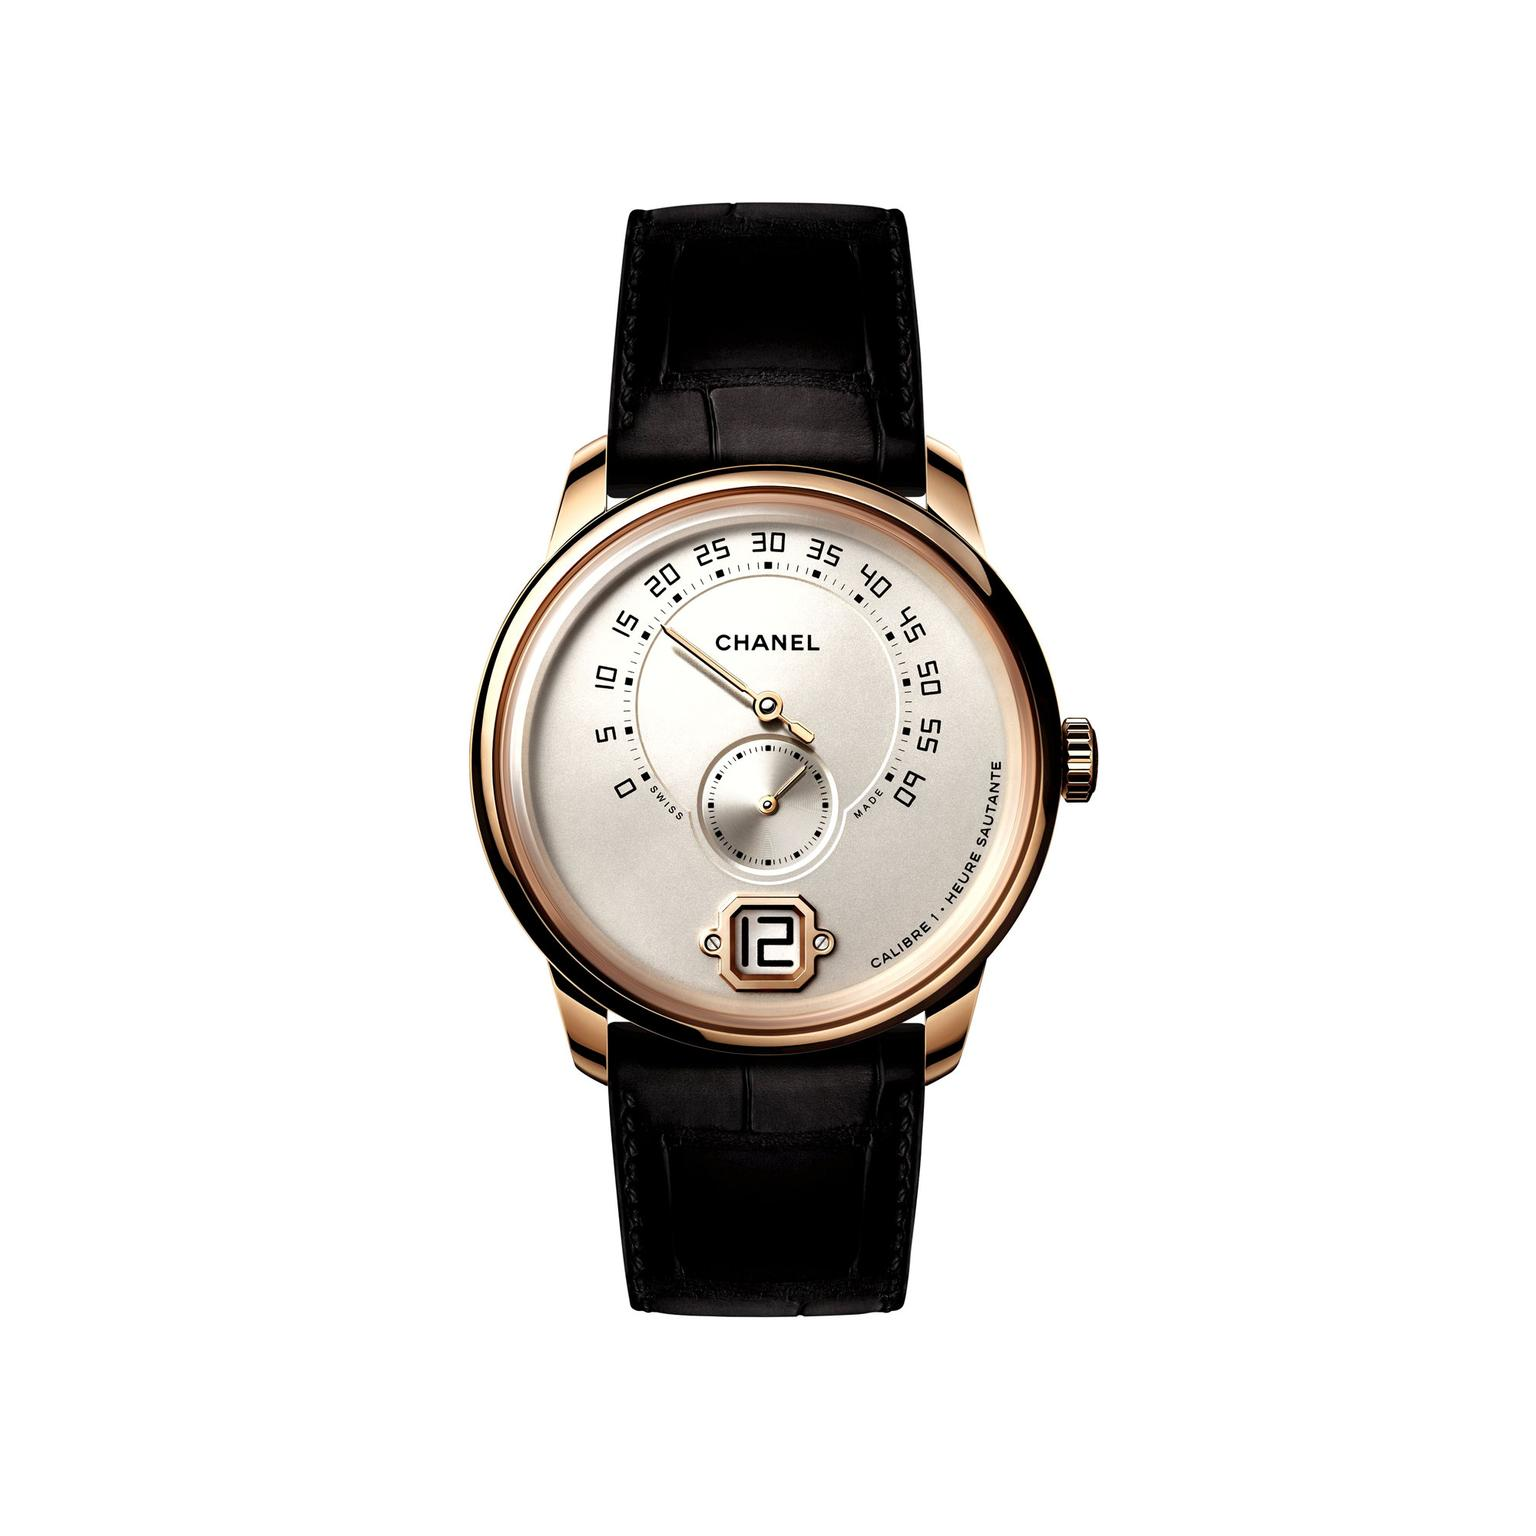 Monsieur de Chanel watch in beige gold